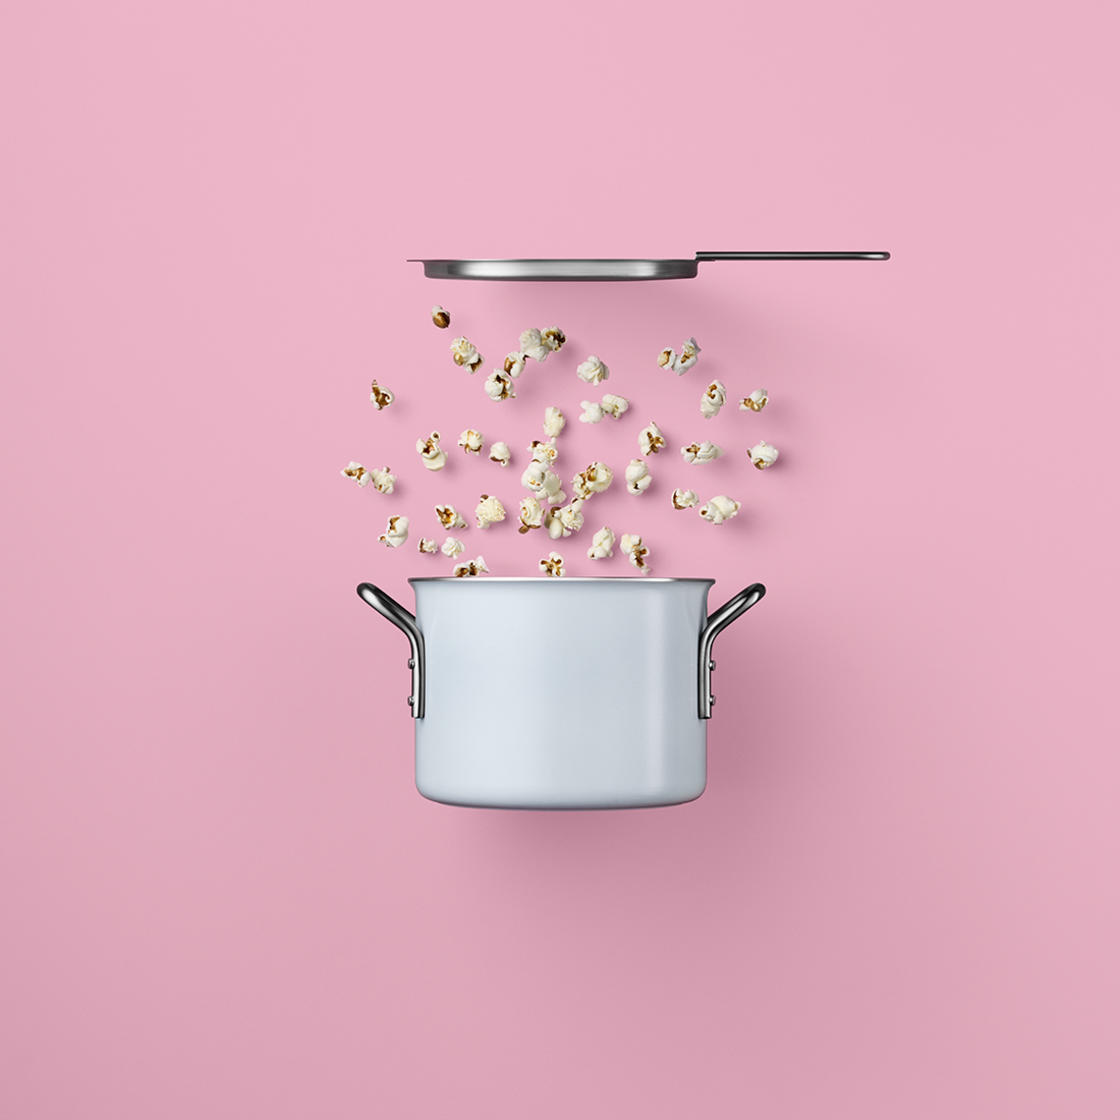 Foodstyling – This photographer imagines beautiful minimalist recipes